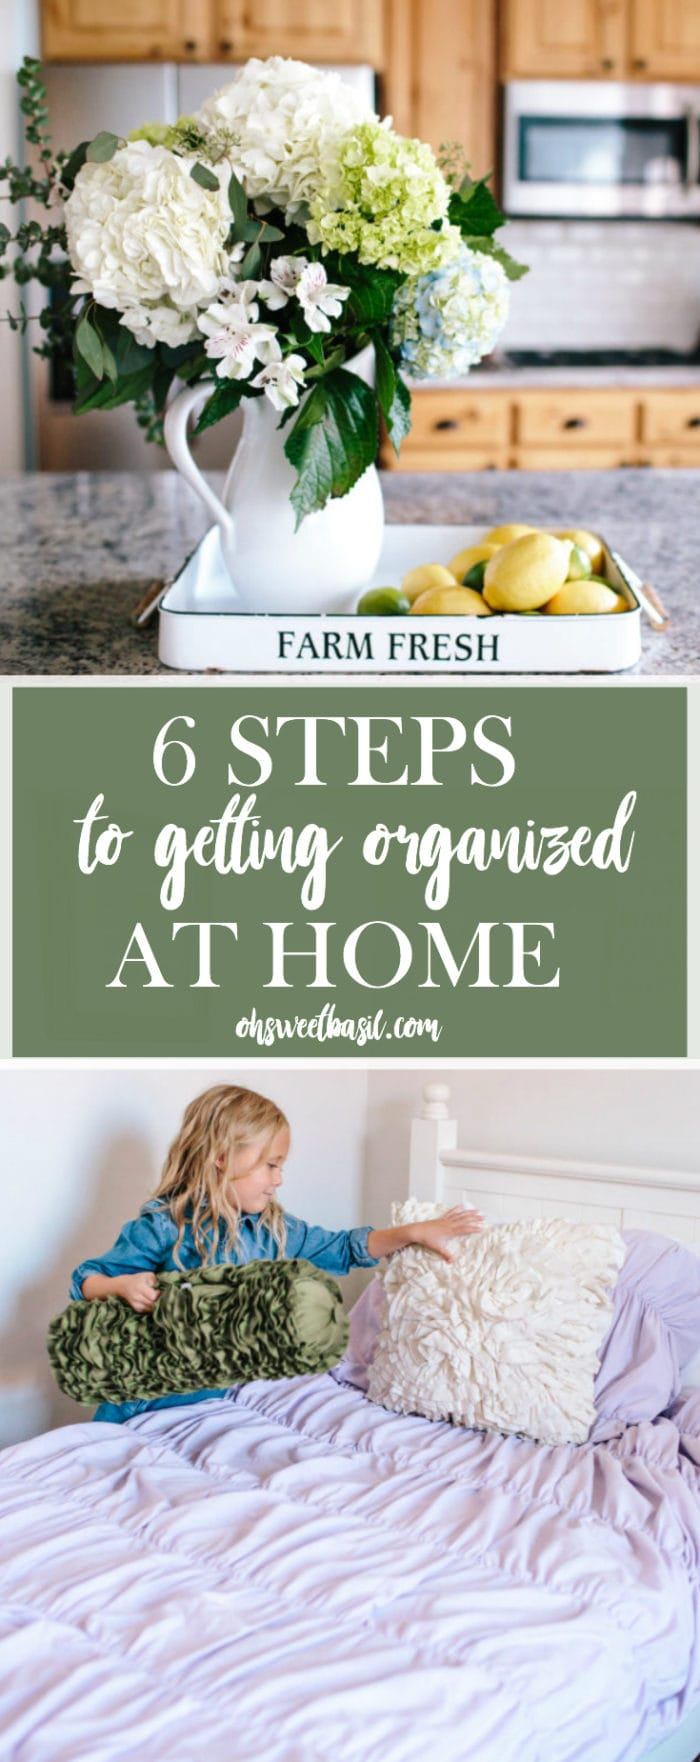 Well, it's here, isn't it? The First 6 Steps to Getting Organized at Home and before you know it you'll be feeling better about yourself, less ill, and happier!